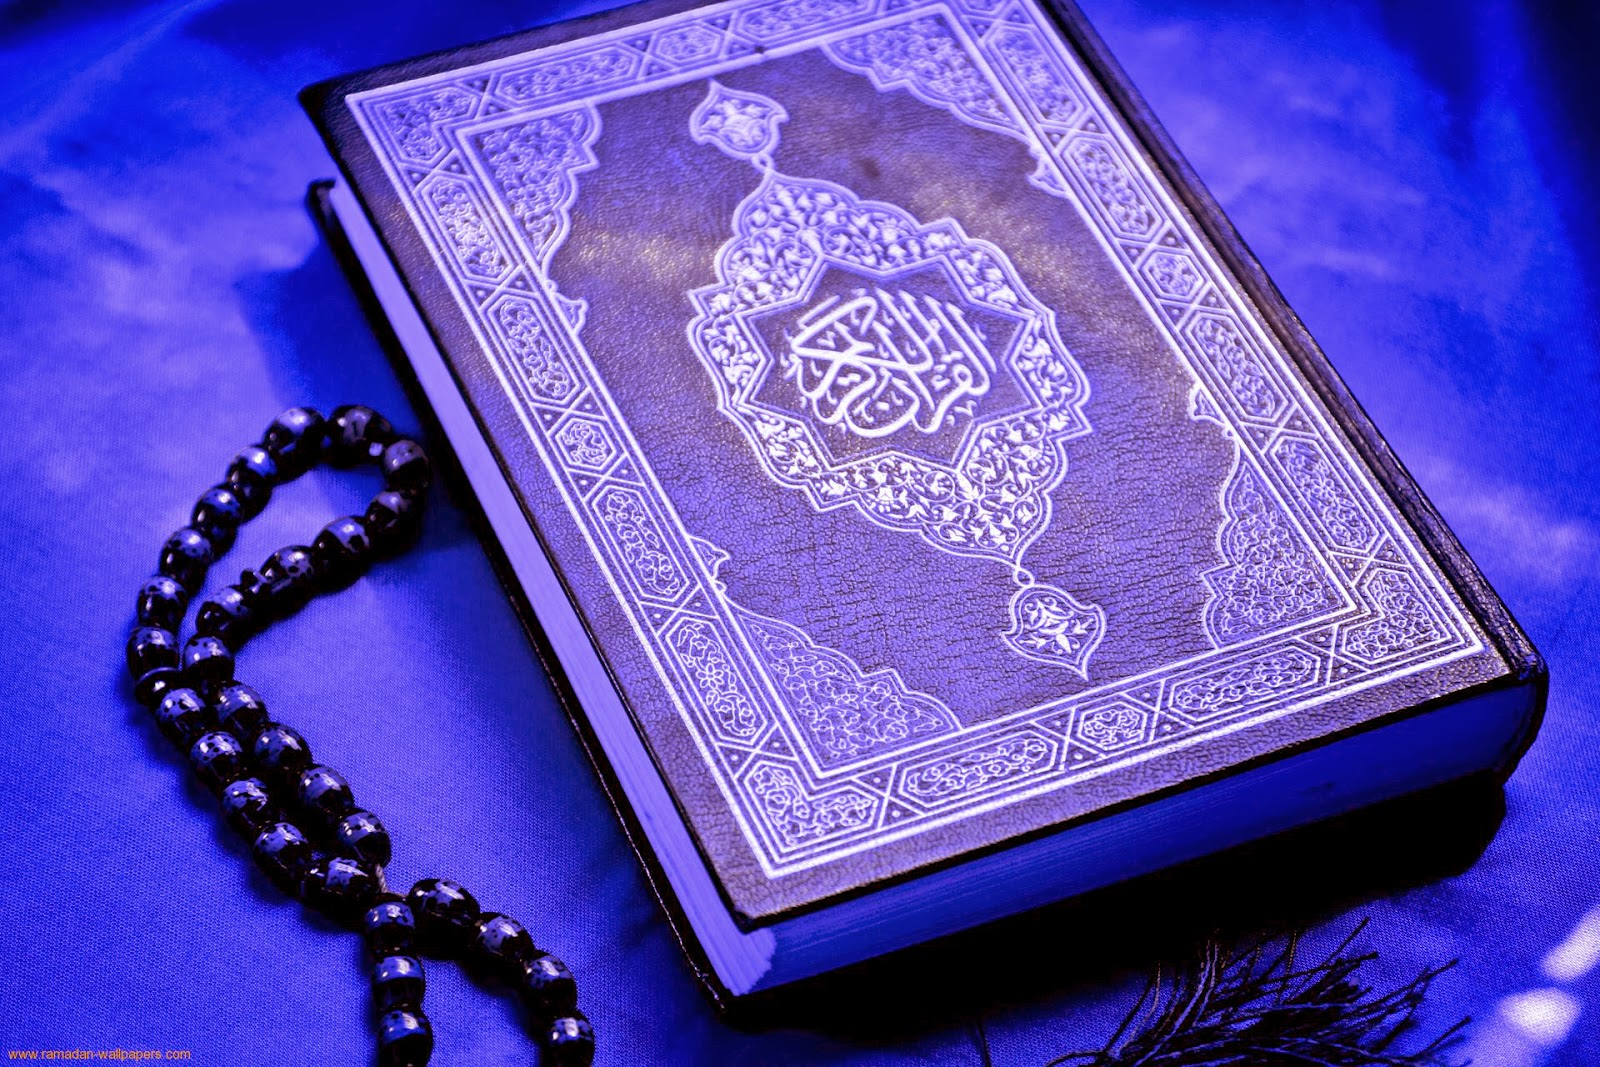 quran karim wallpaper 2014 quran karim wallpaper hd quran karimQuran Wallpaper Free Download